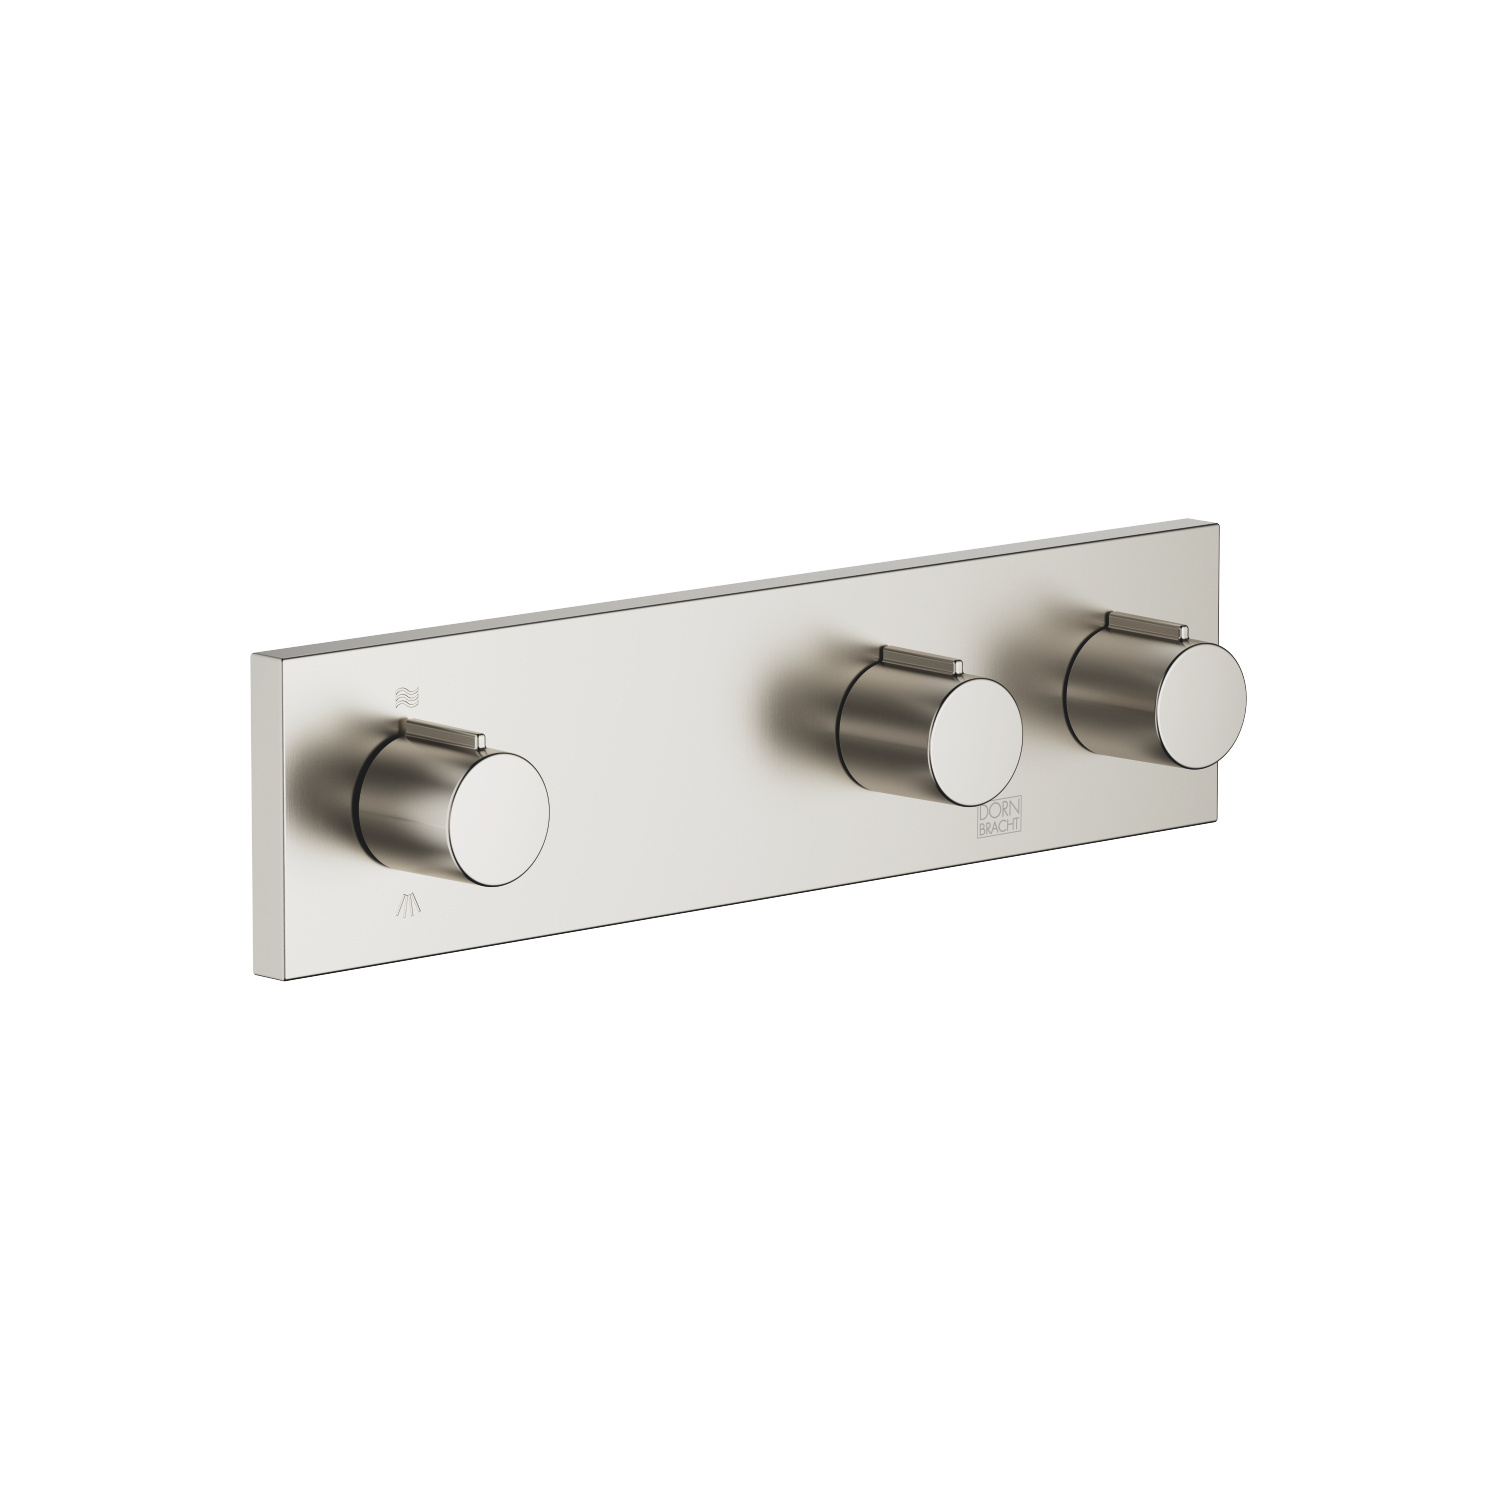 Wall valve with 2 valves with diverter for wall mounting - platinum matt